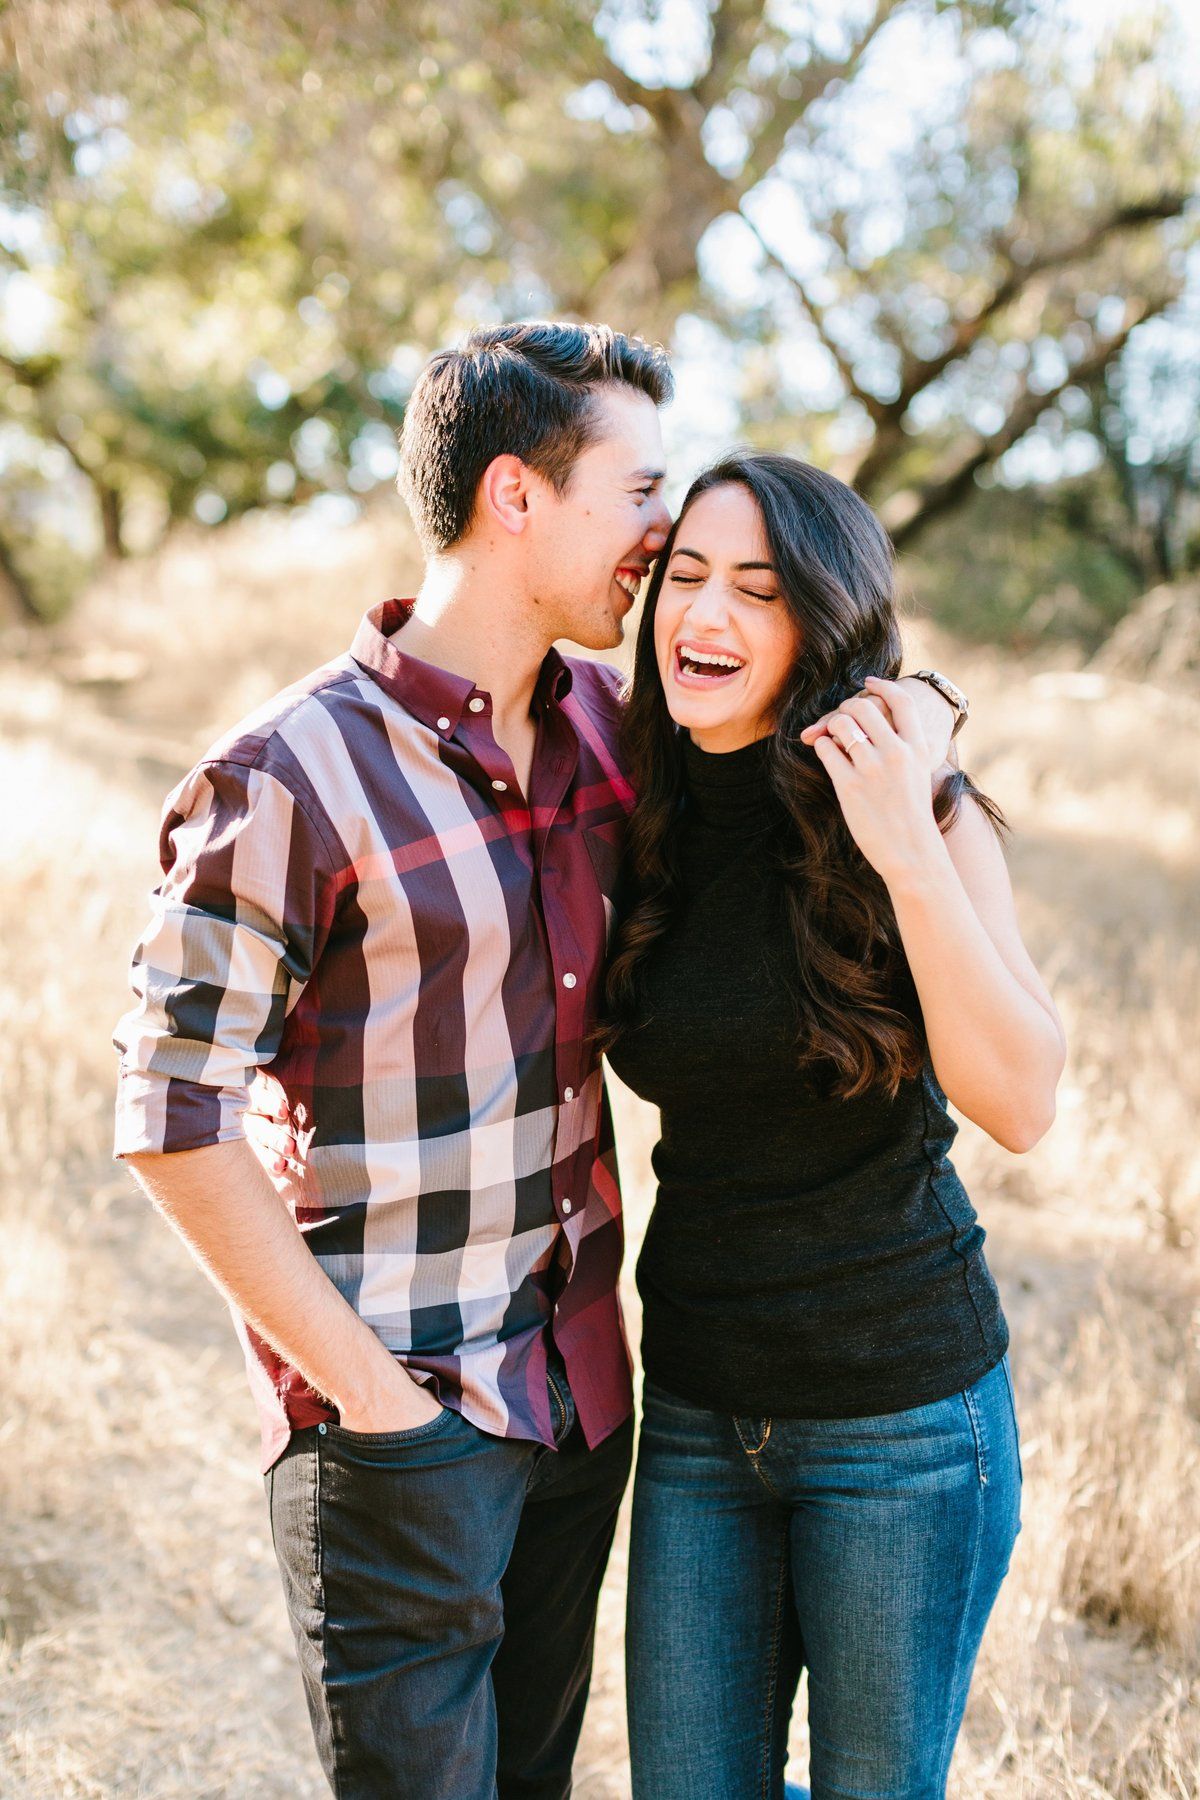 Best California Engagement Photographer-Jodee Debes Photography-35